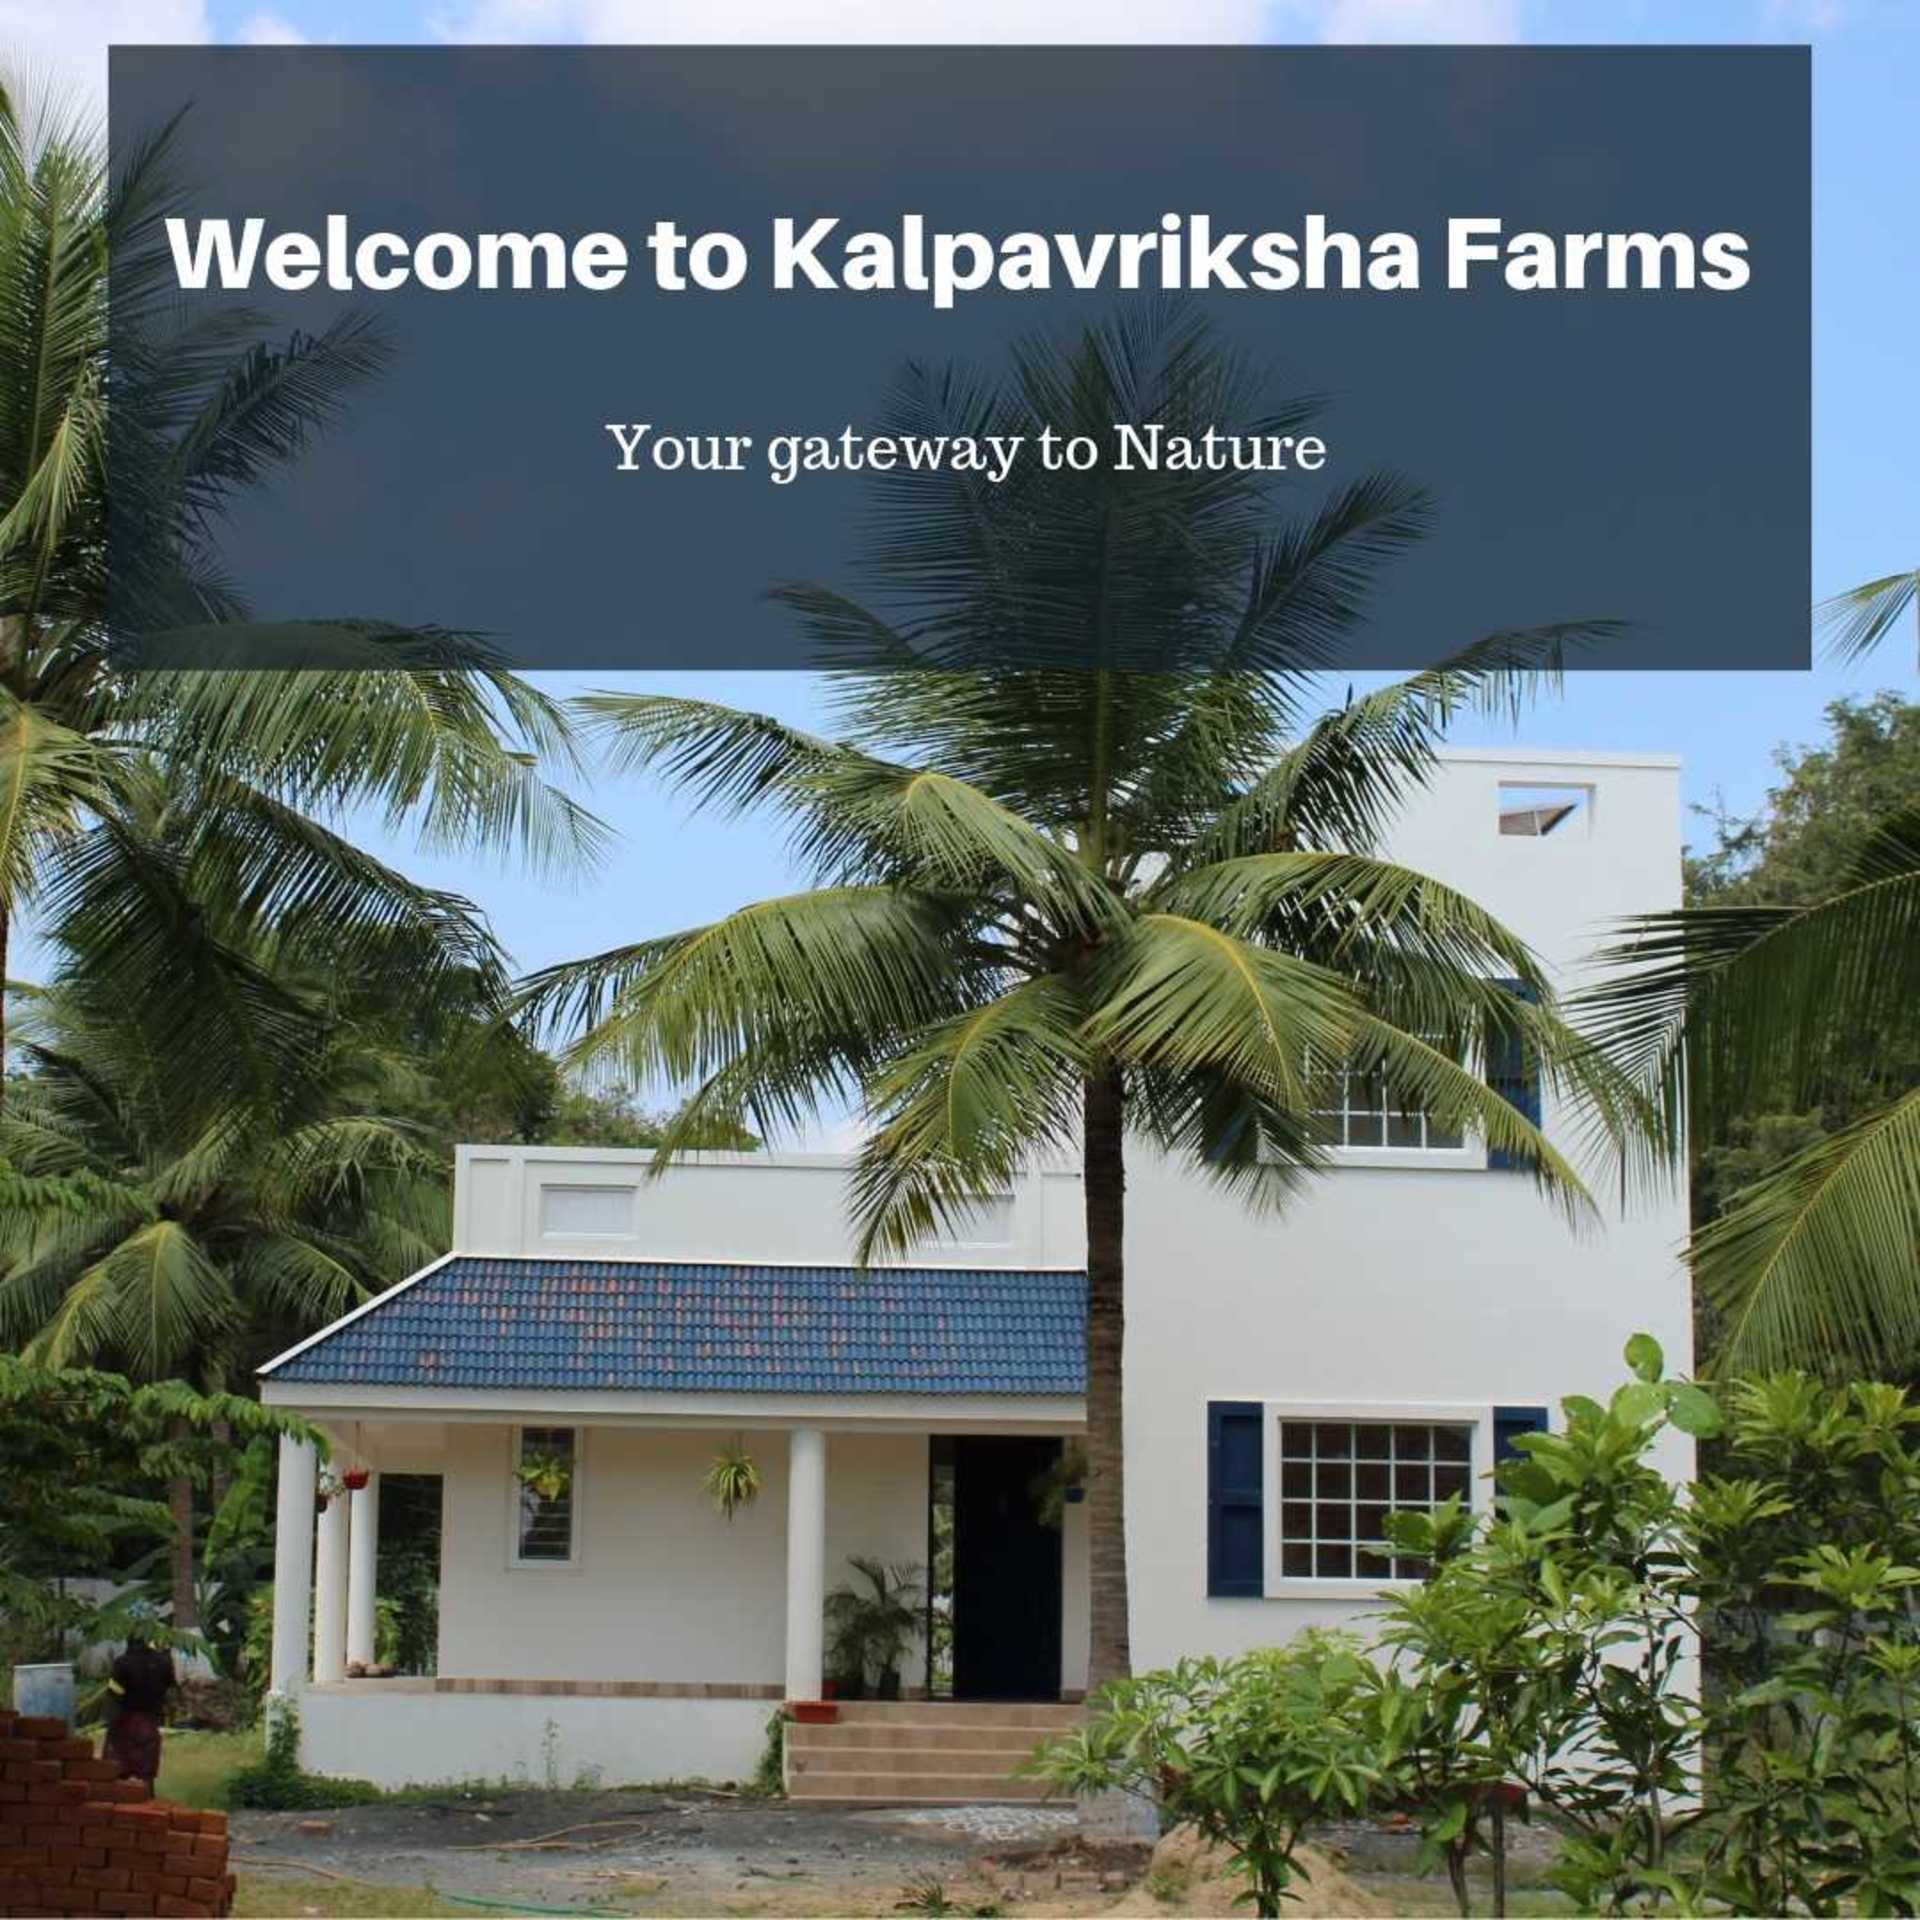 IshtyleAwhile - A Chennai based Indian Fashion Blog - Welcome to Kalpavriksha Farms